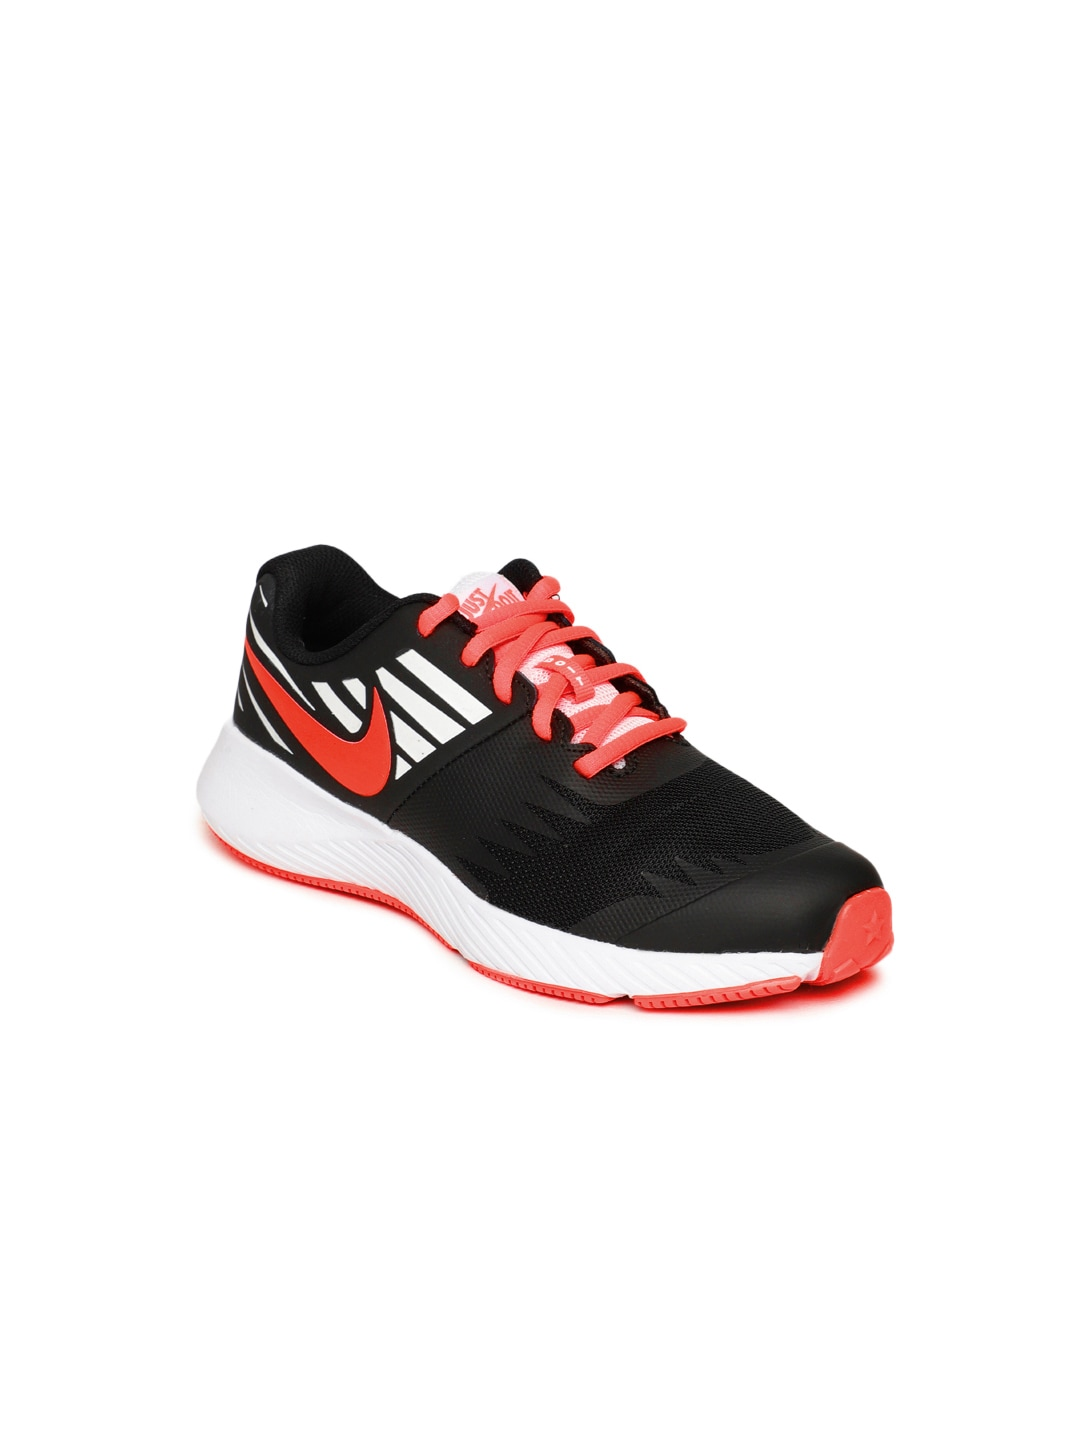 d0fd1ac0de46 Boy s Nike Shoes - Buy Nike Shoes for Boys Online in India